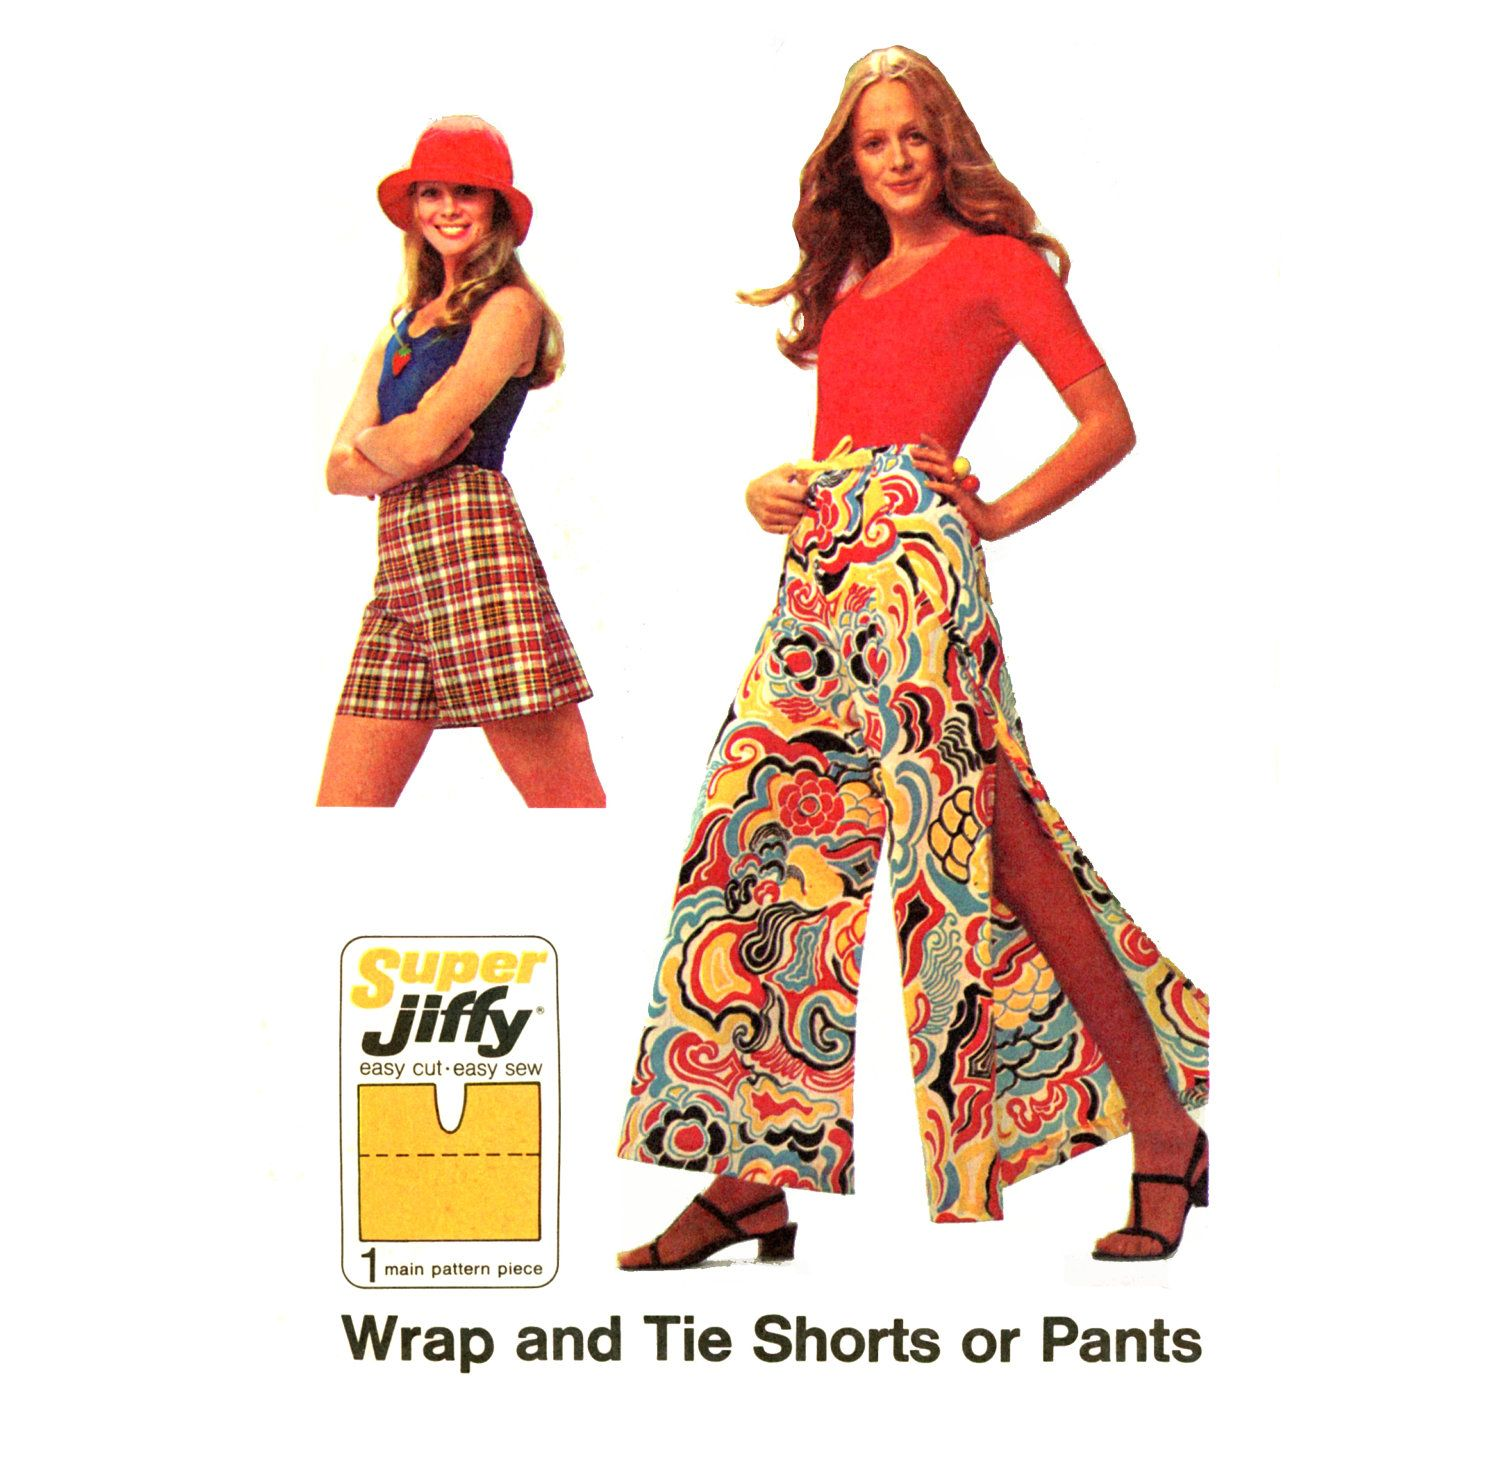 adjustable pants to accommodate weight gain 1970s Jiffy Wrap and Tie Pants Simplicity 5124 Misses Shorts or Evening Length Palazzo Wrap Pants Womens Vintage Sewing Patten One Size. $12.00, via Etsy.